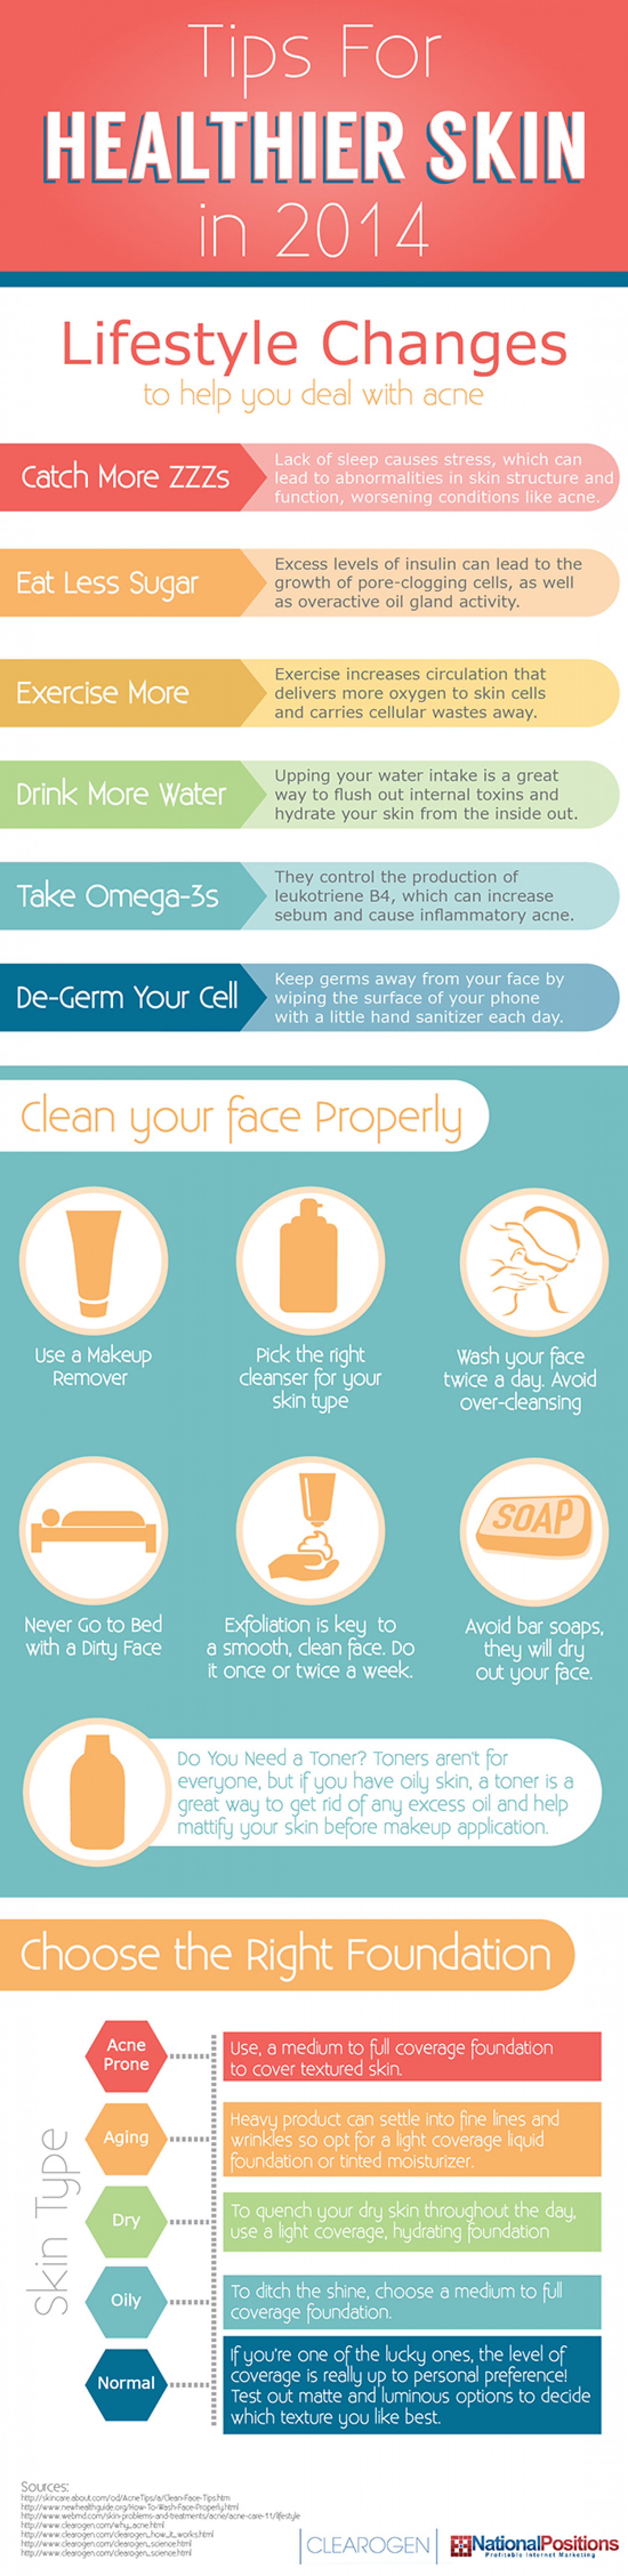 Tips For Healthier Skin in 2014 Infographic